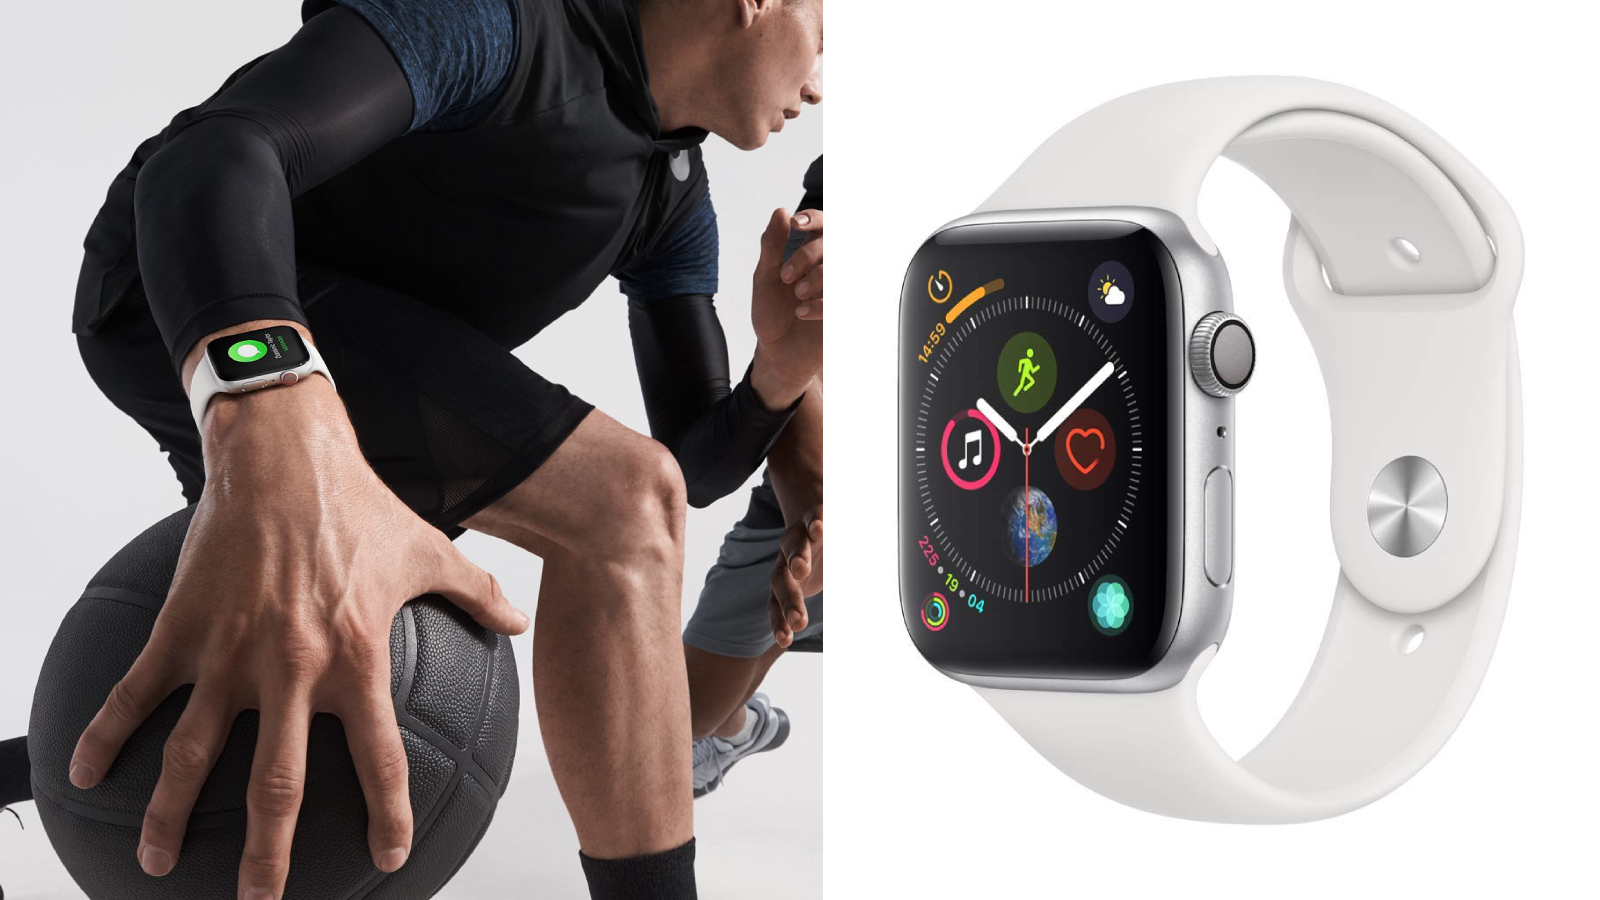 The Apple Watch Series 3 is at its lowest price ever right now